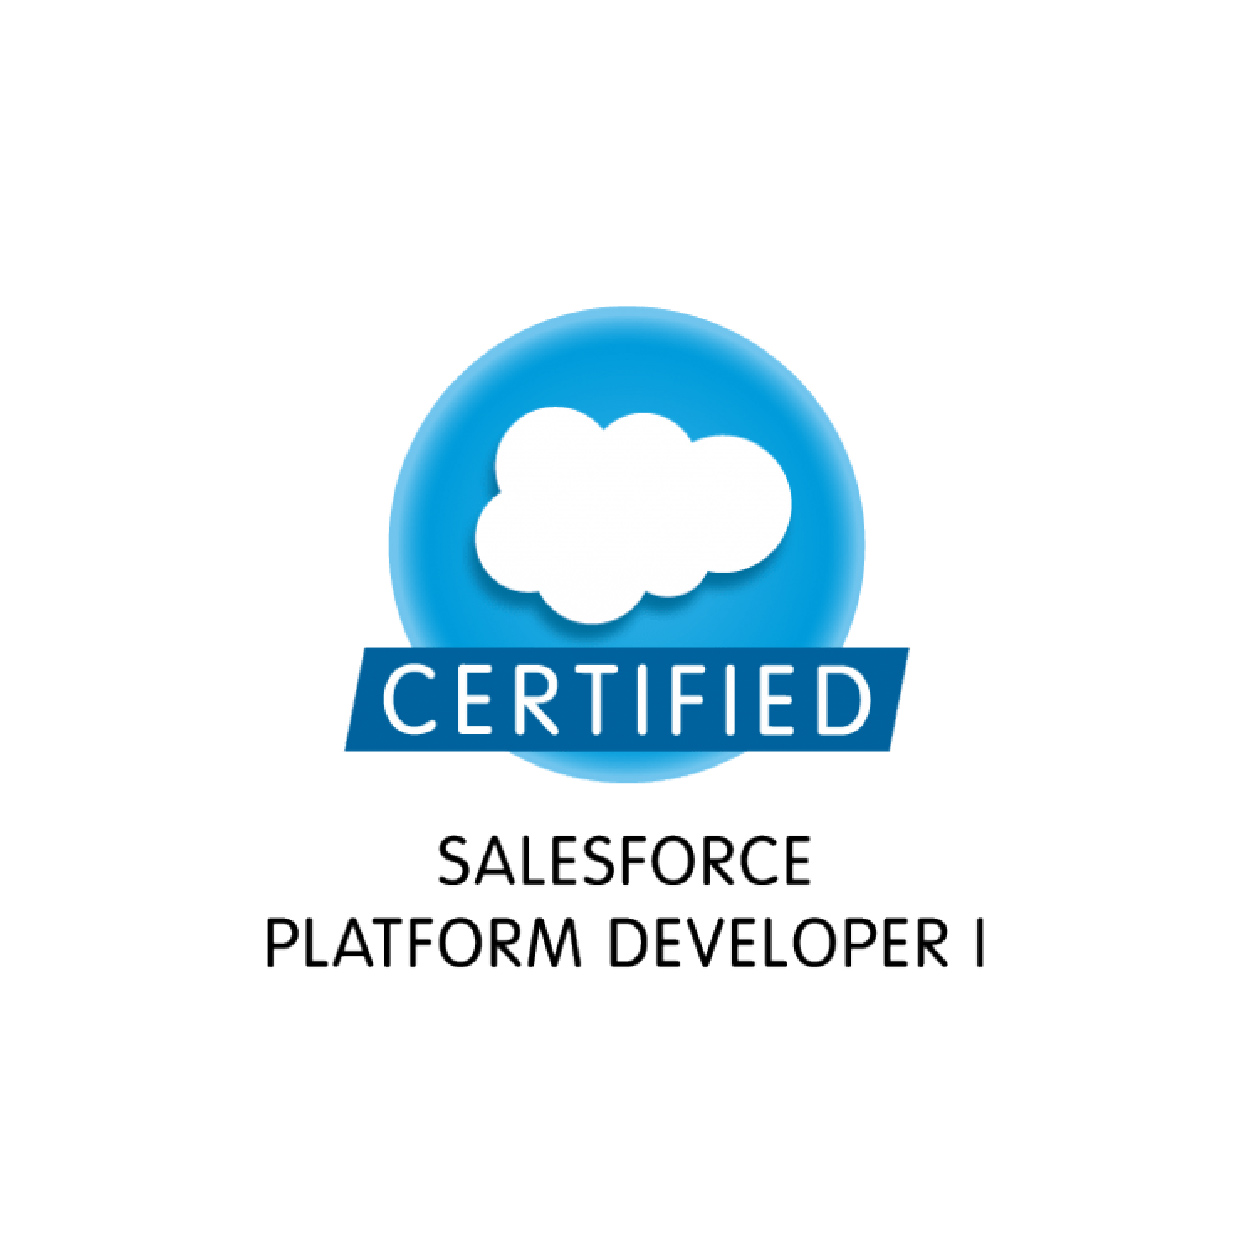 salesforce_certified-03.jpg